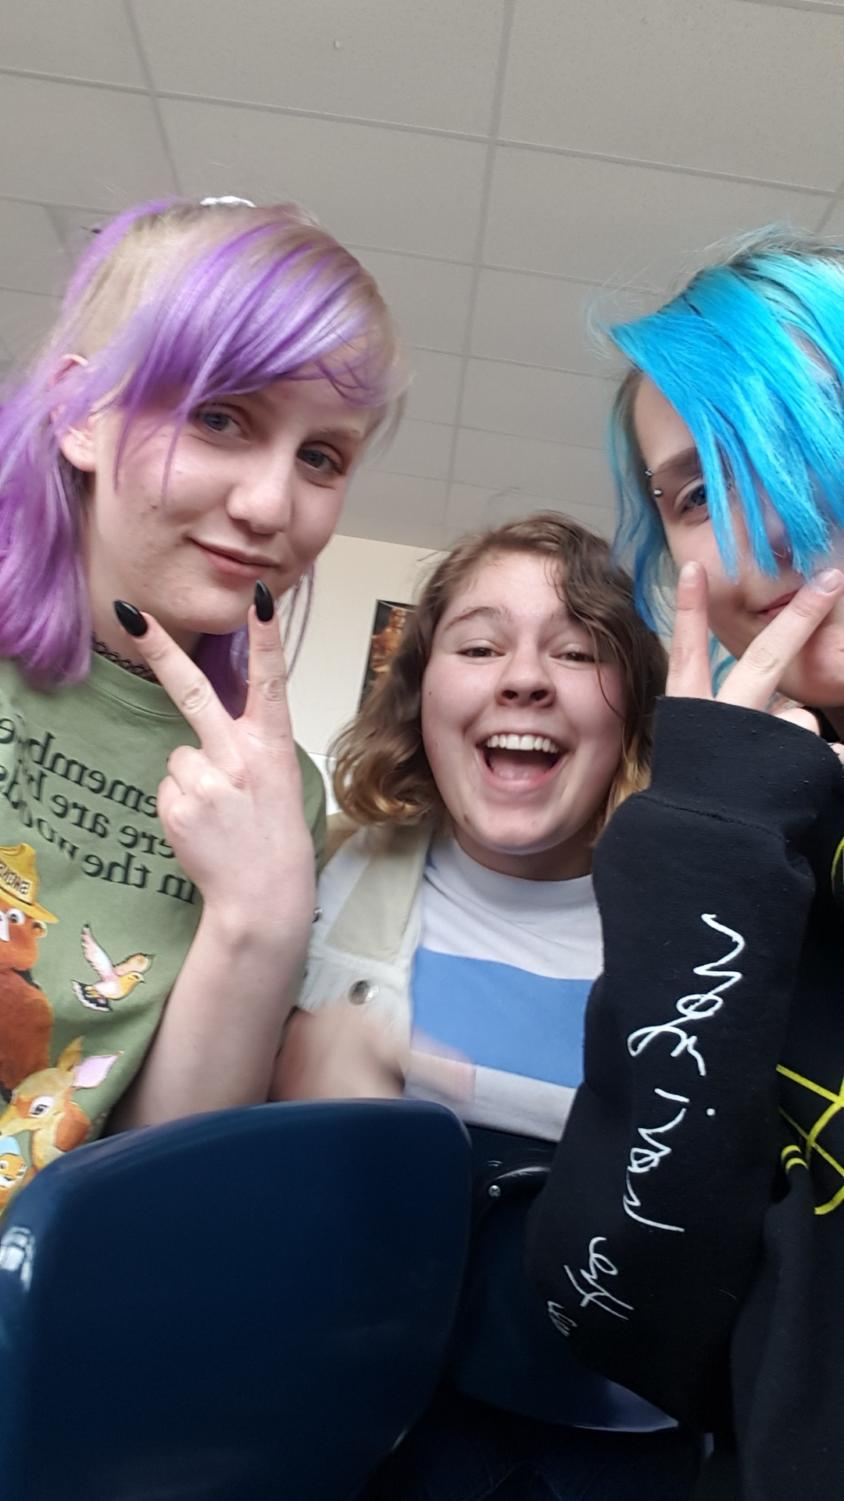 Some dyed haired teens trying to be cool.